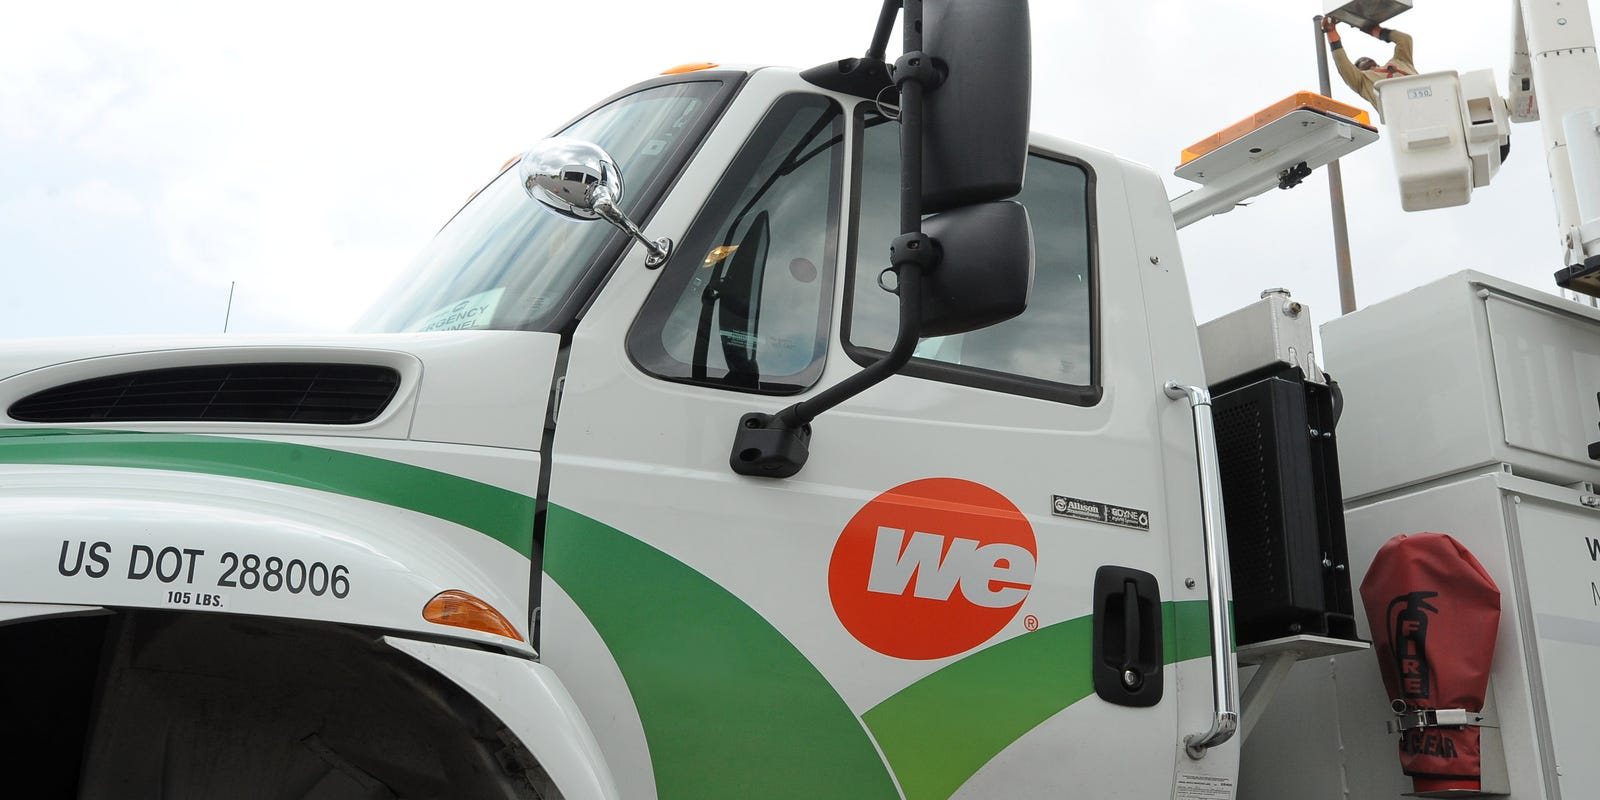 We Energies estimates that residential customers will spend 11% less on natural gas this winter